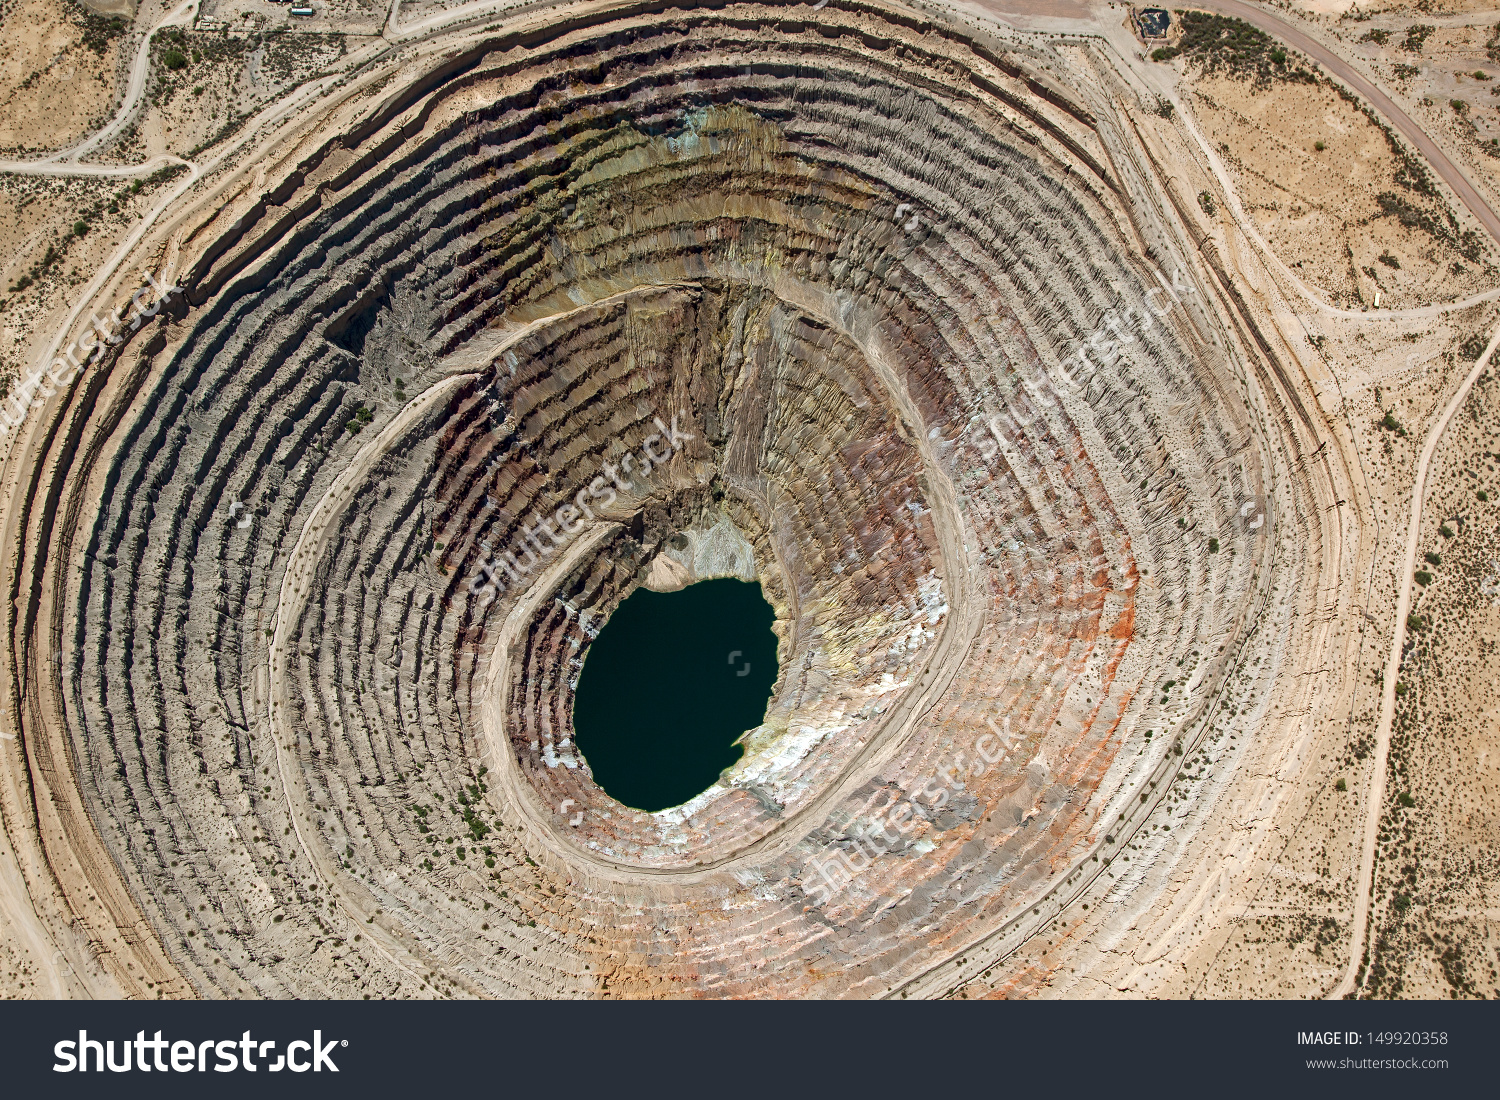 Looking Into Open Pit Mine Near Stock Photo 149920358.